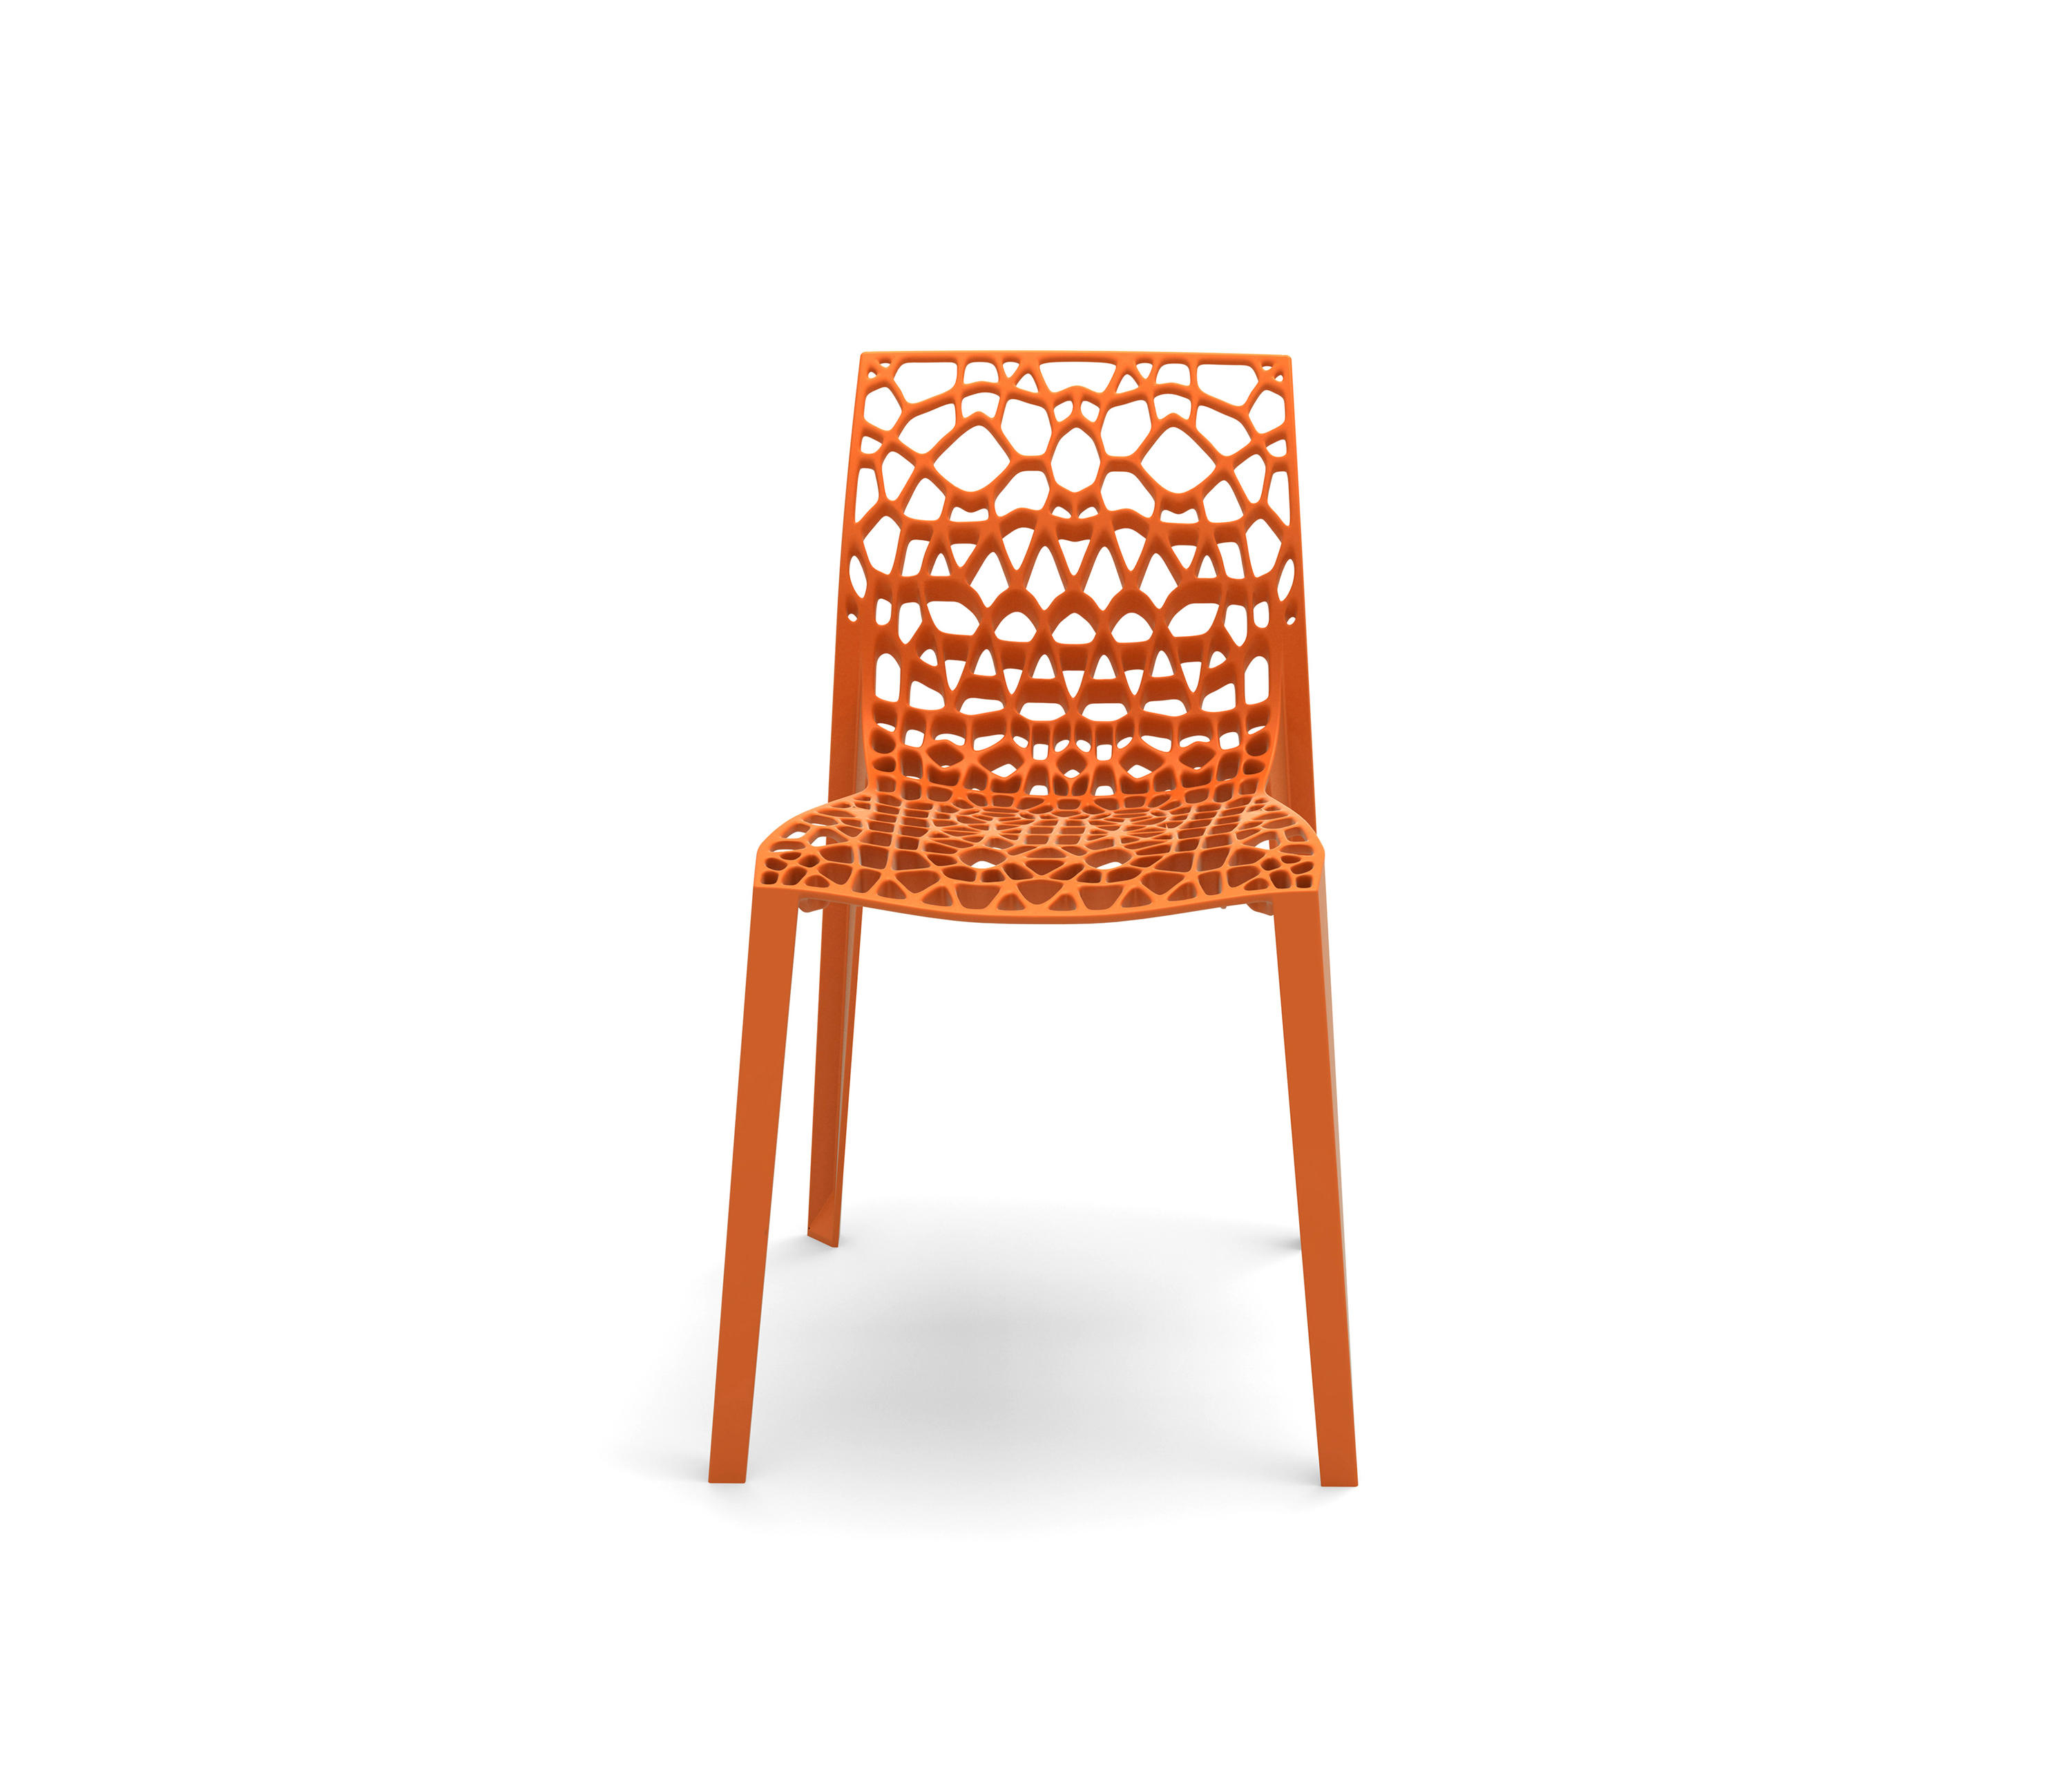 Coral Chair By MOVISI | Chairs ...